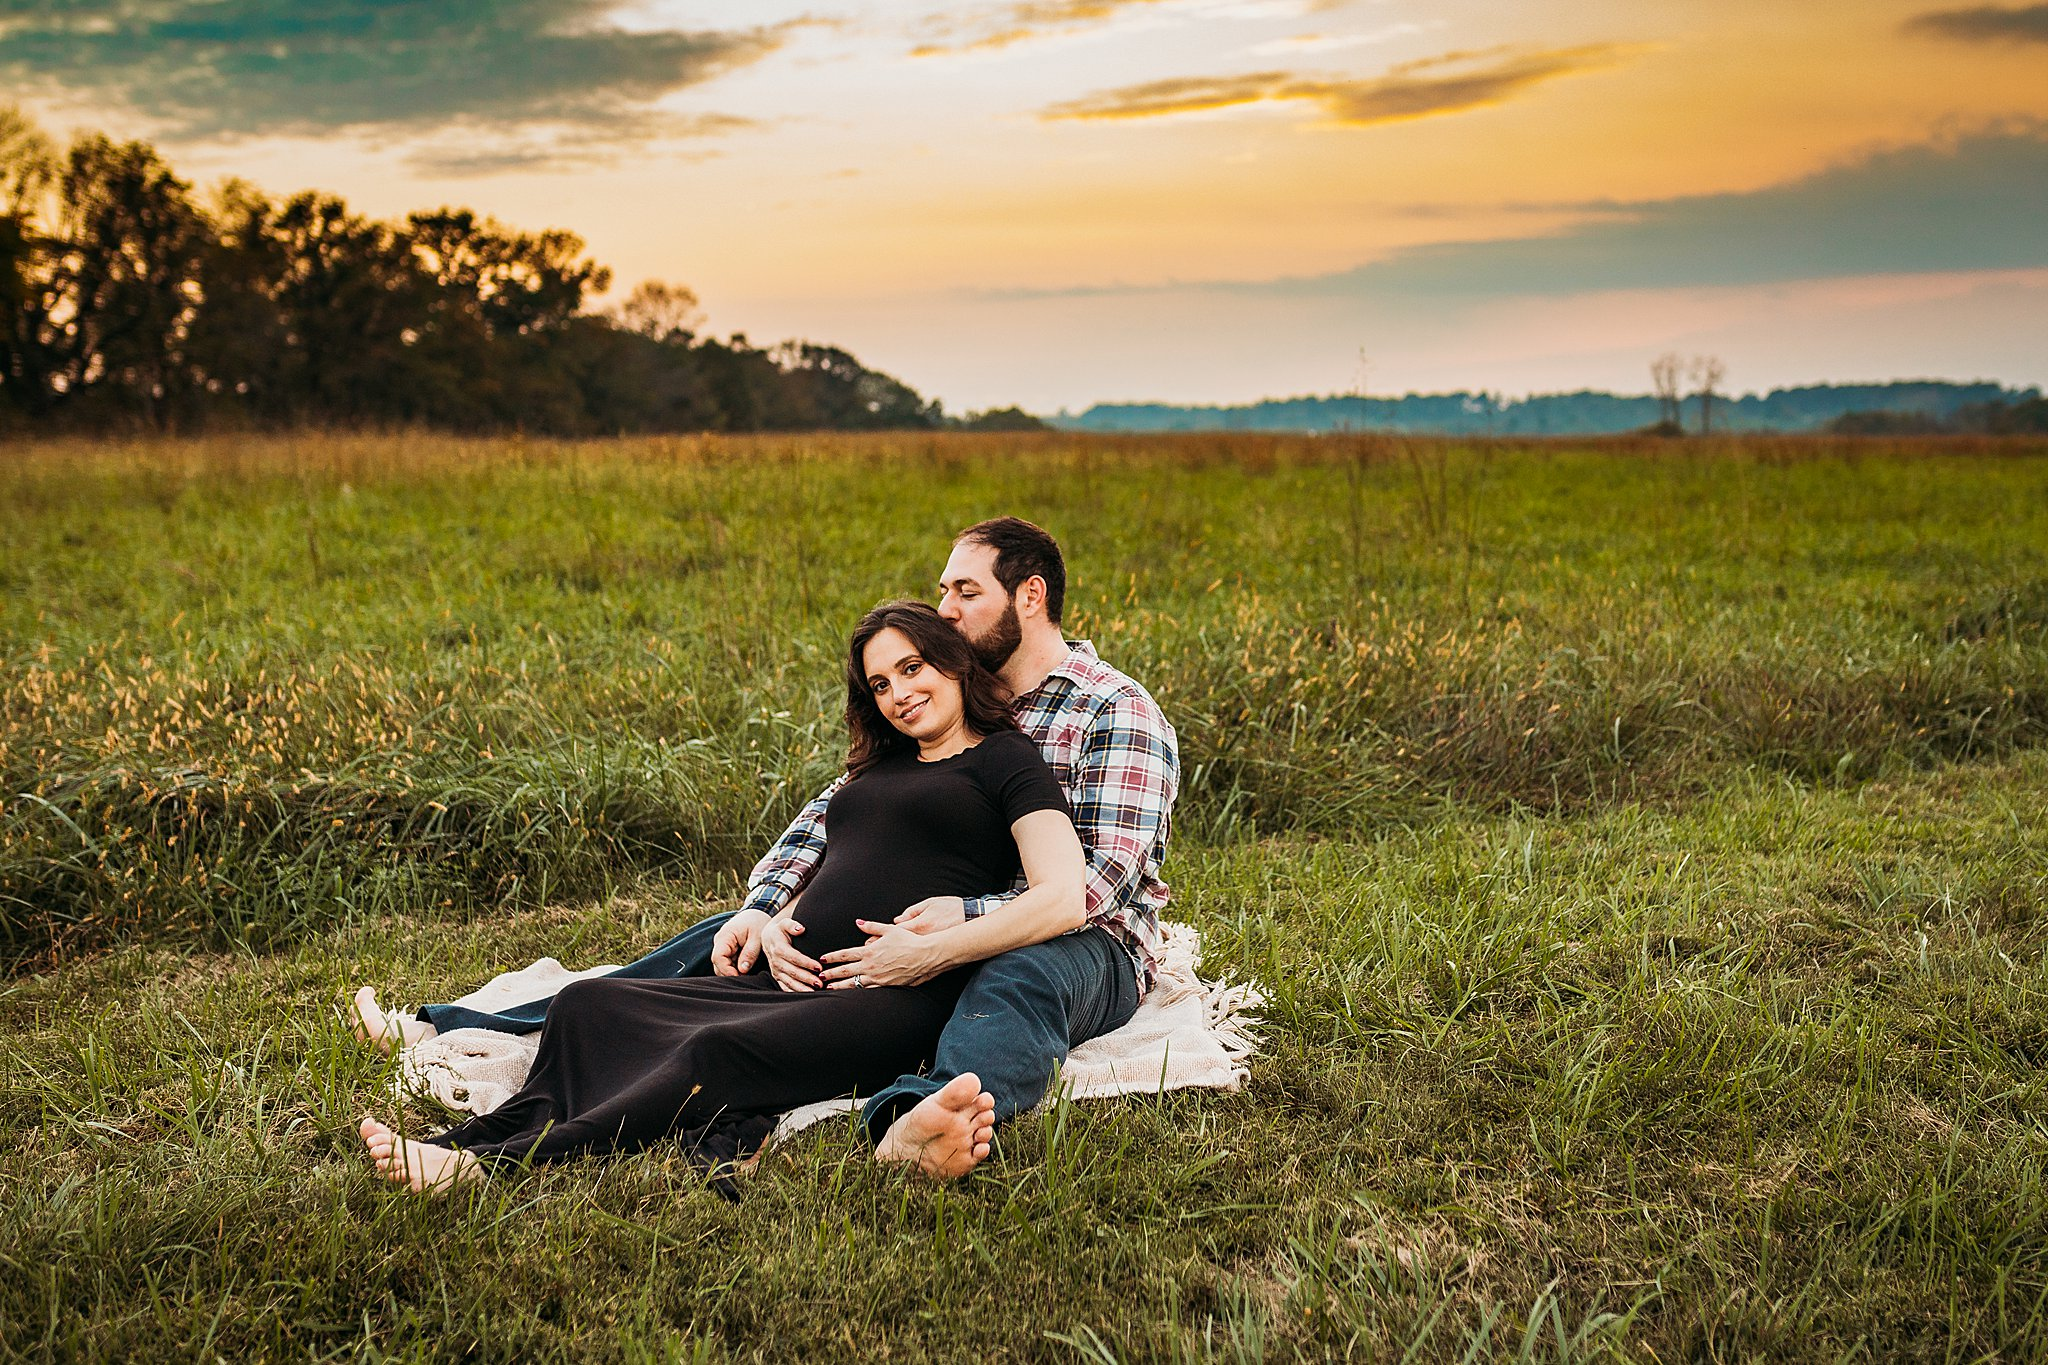 Bucks county maternity photographers